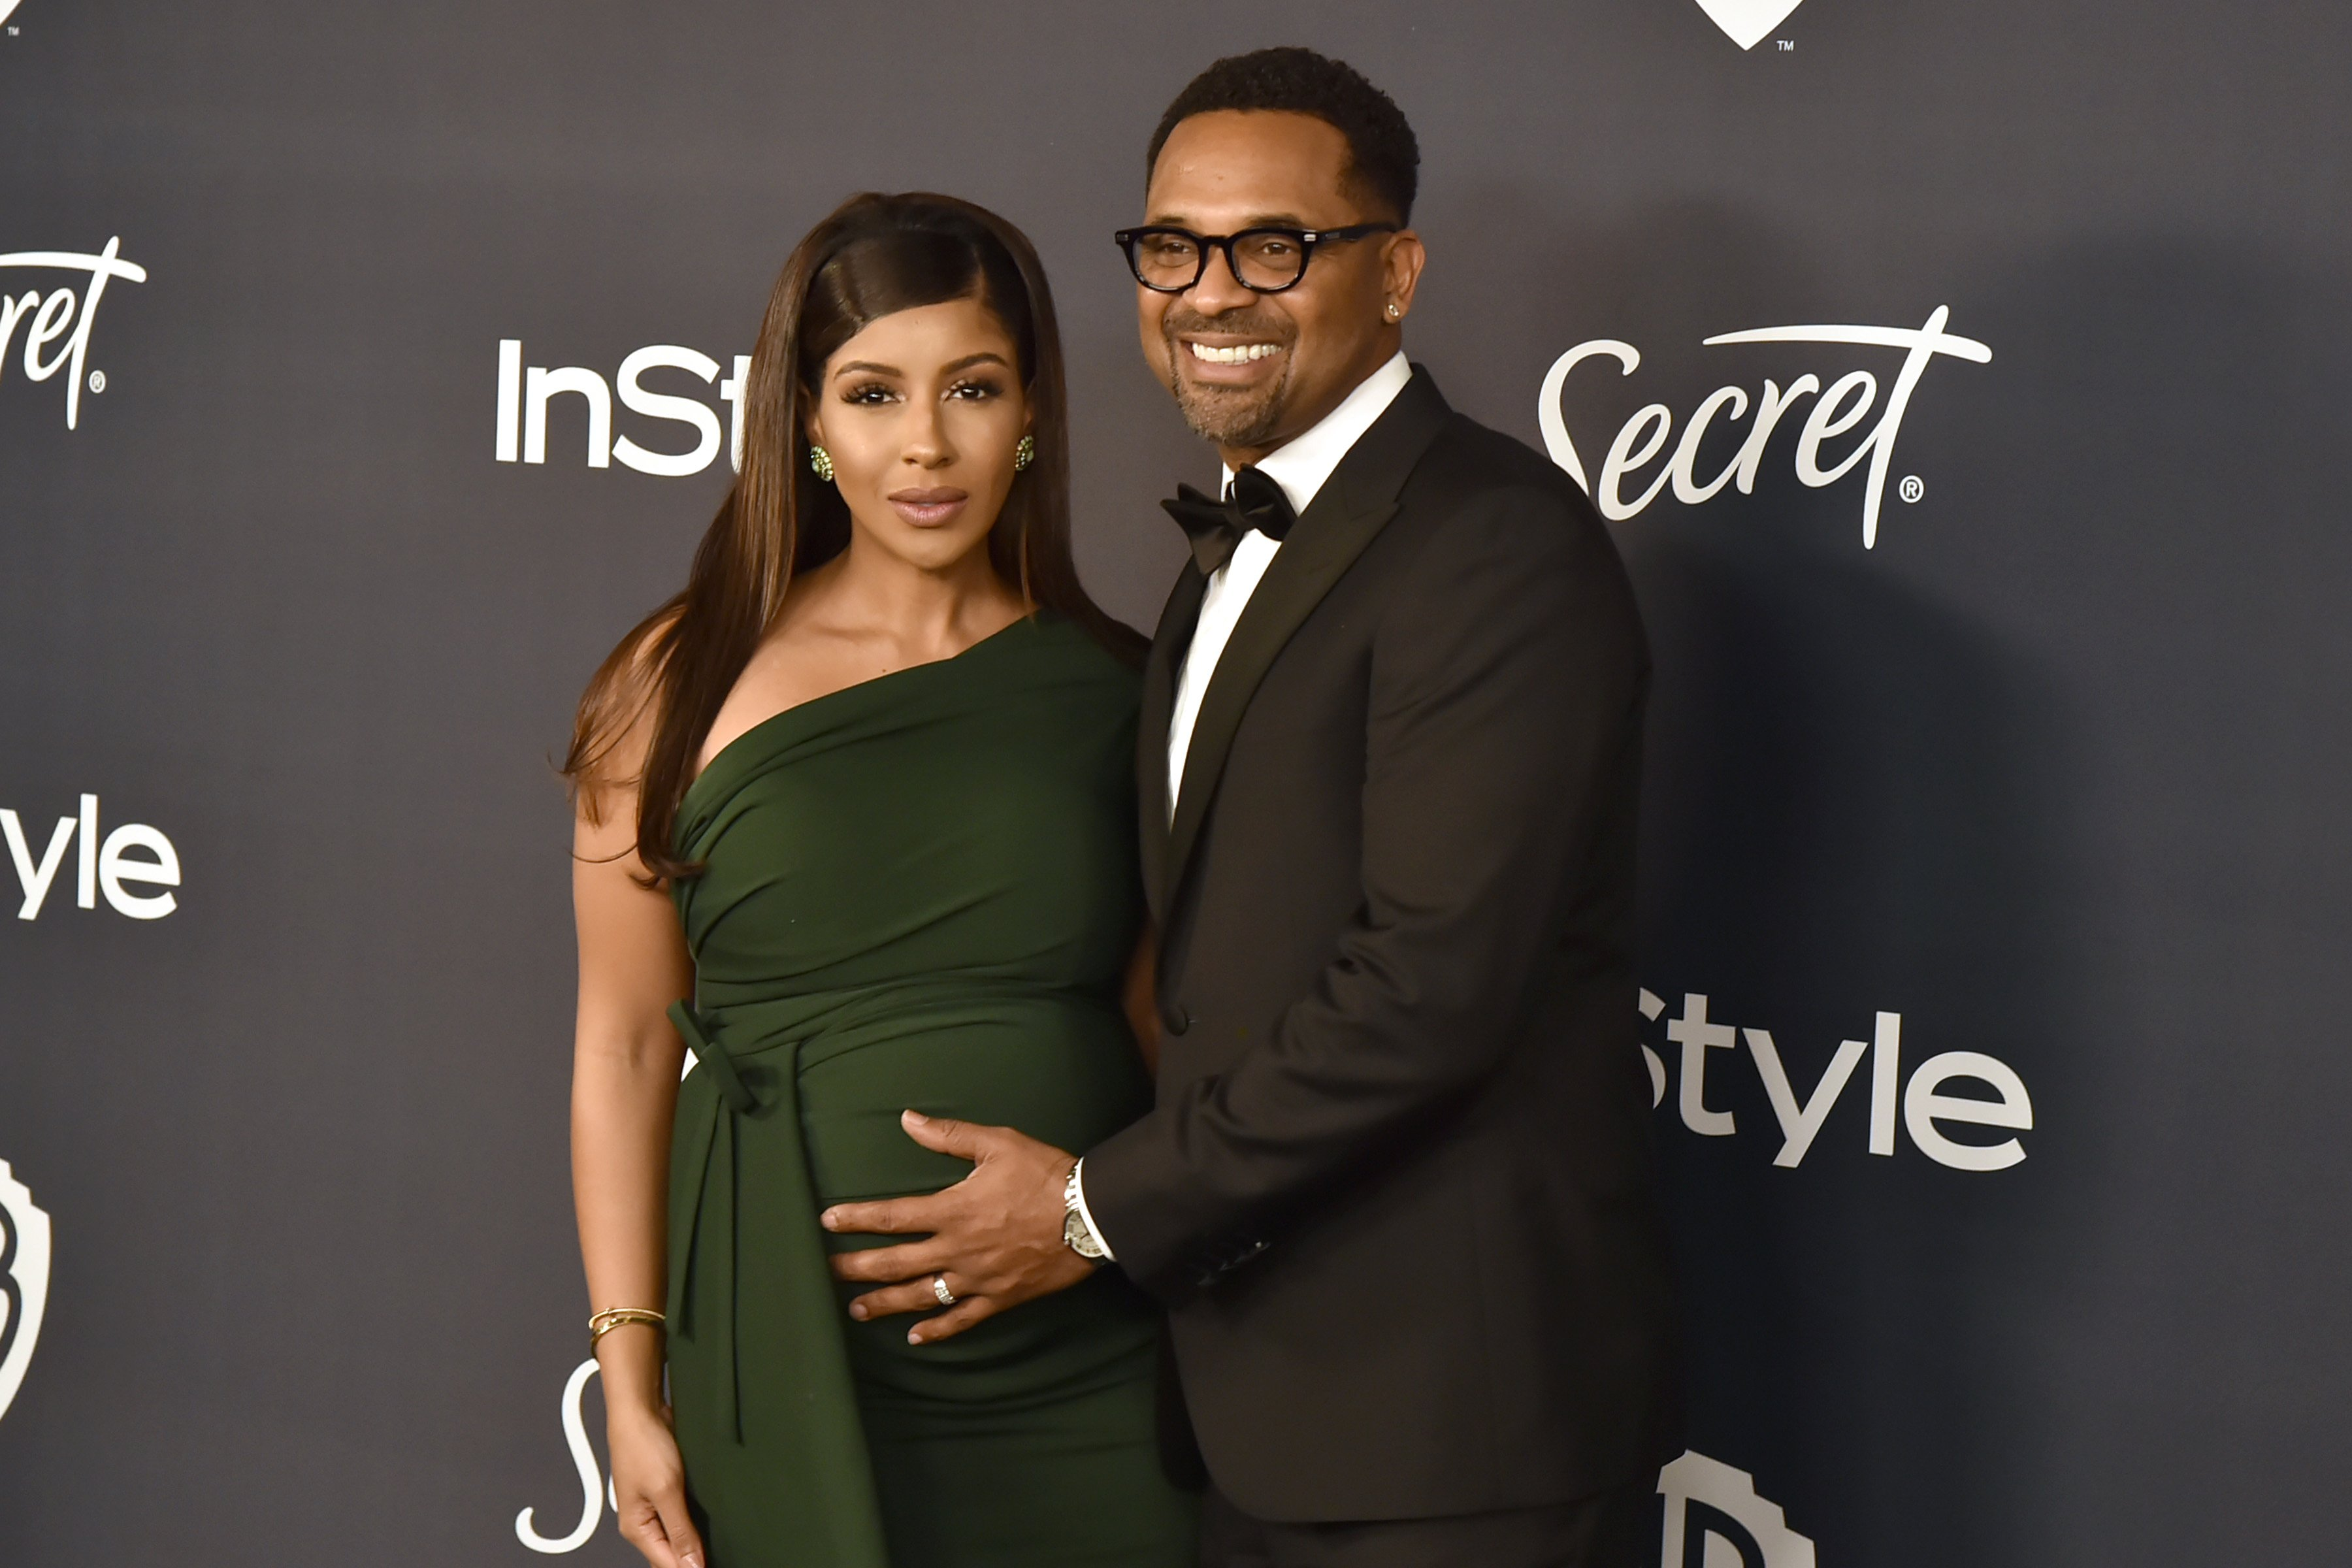 Kyra and Mike Epps arrives at the Annual Warner Bros. and InStyle Golden Globe After Party on January 5, 2020 in Beverly Hills, California. | Photo: Getty Images